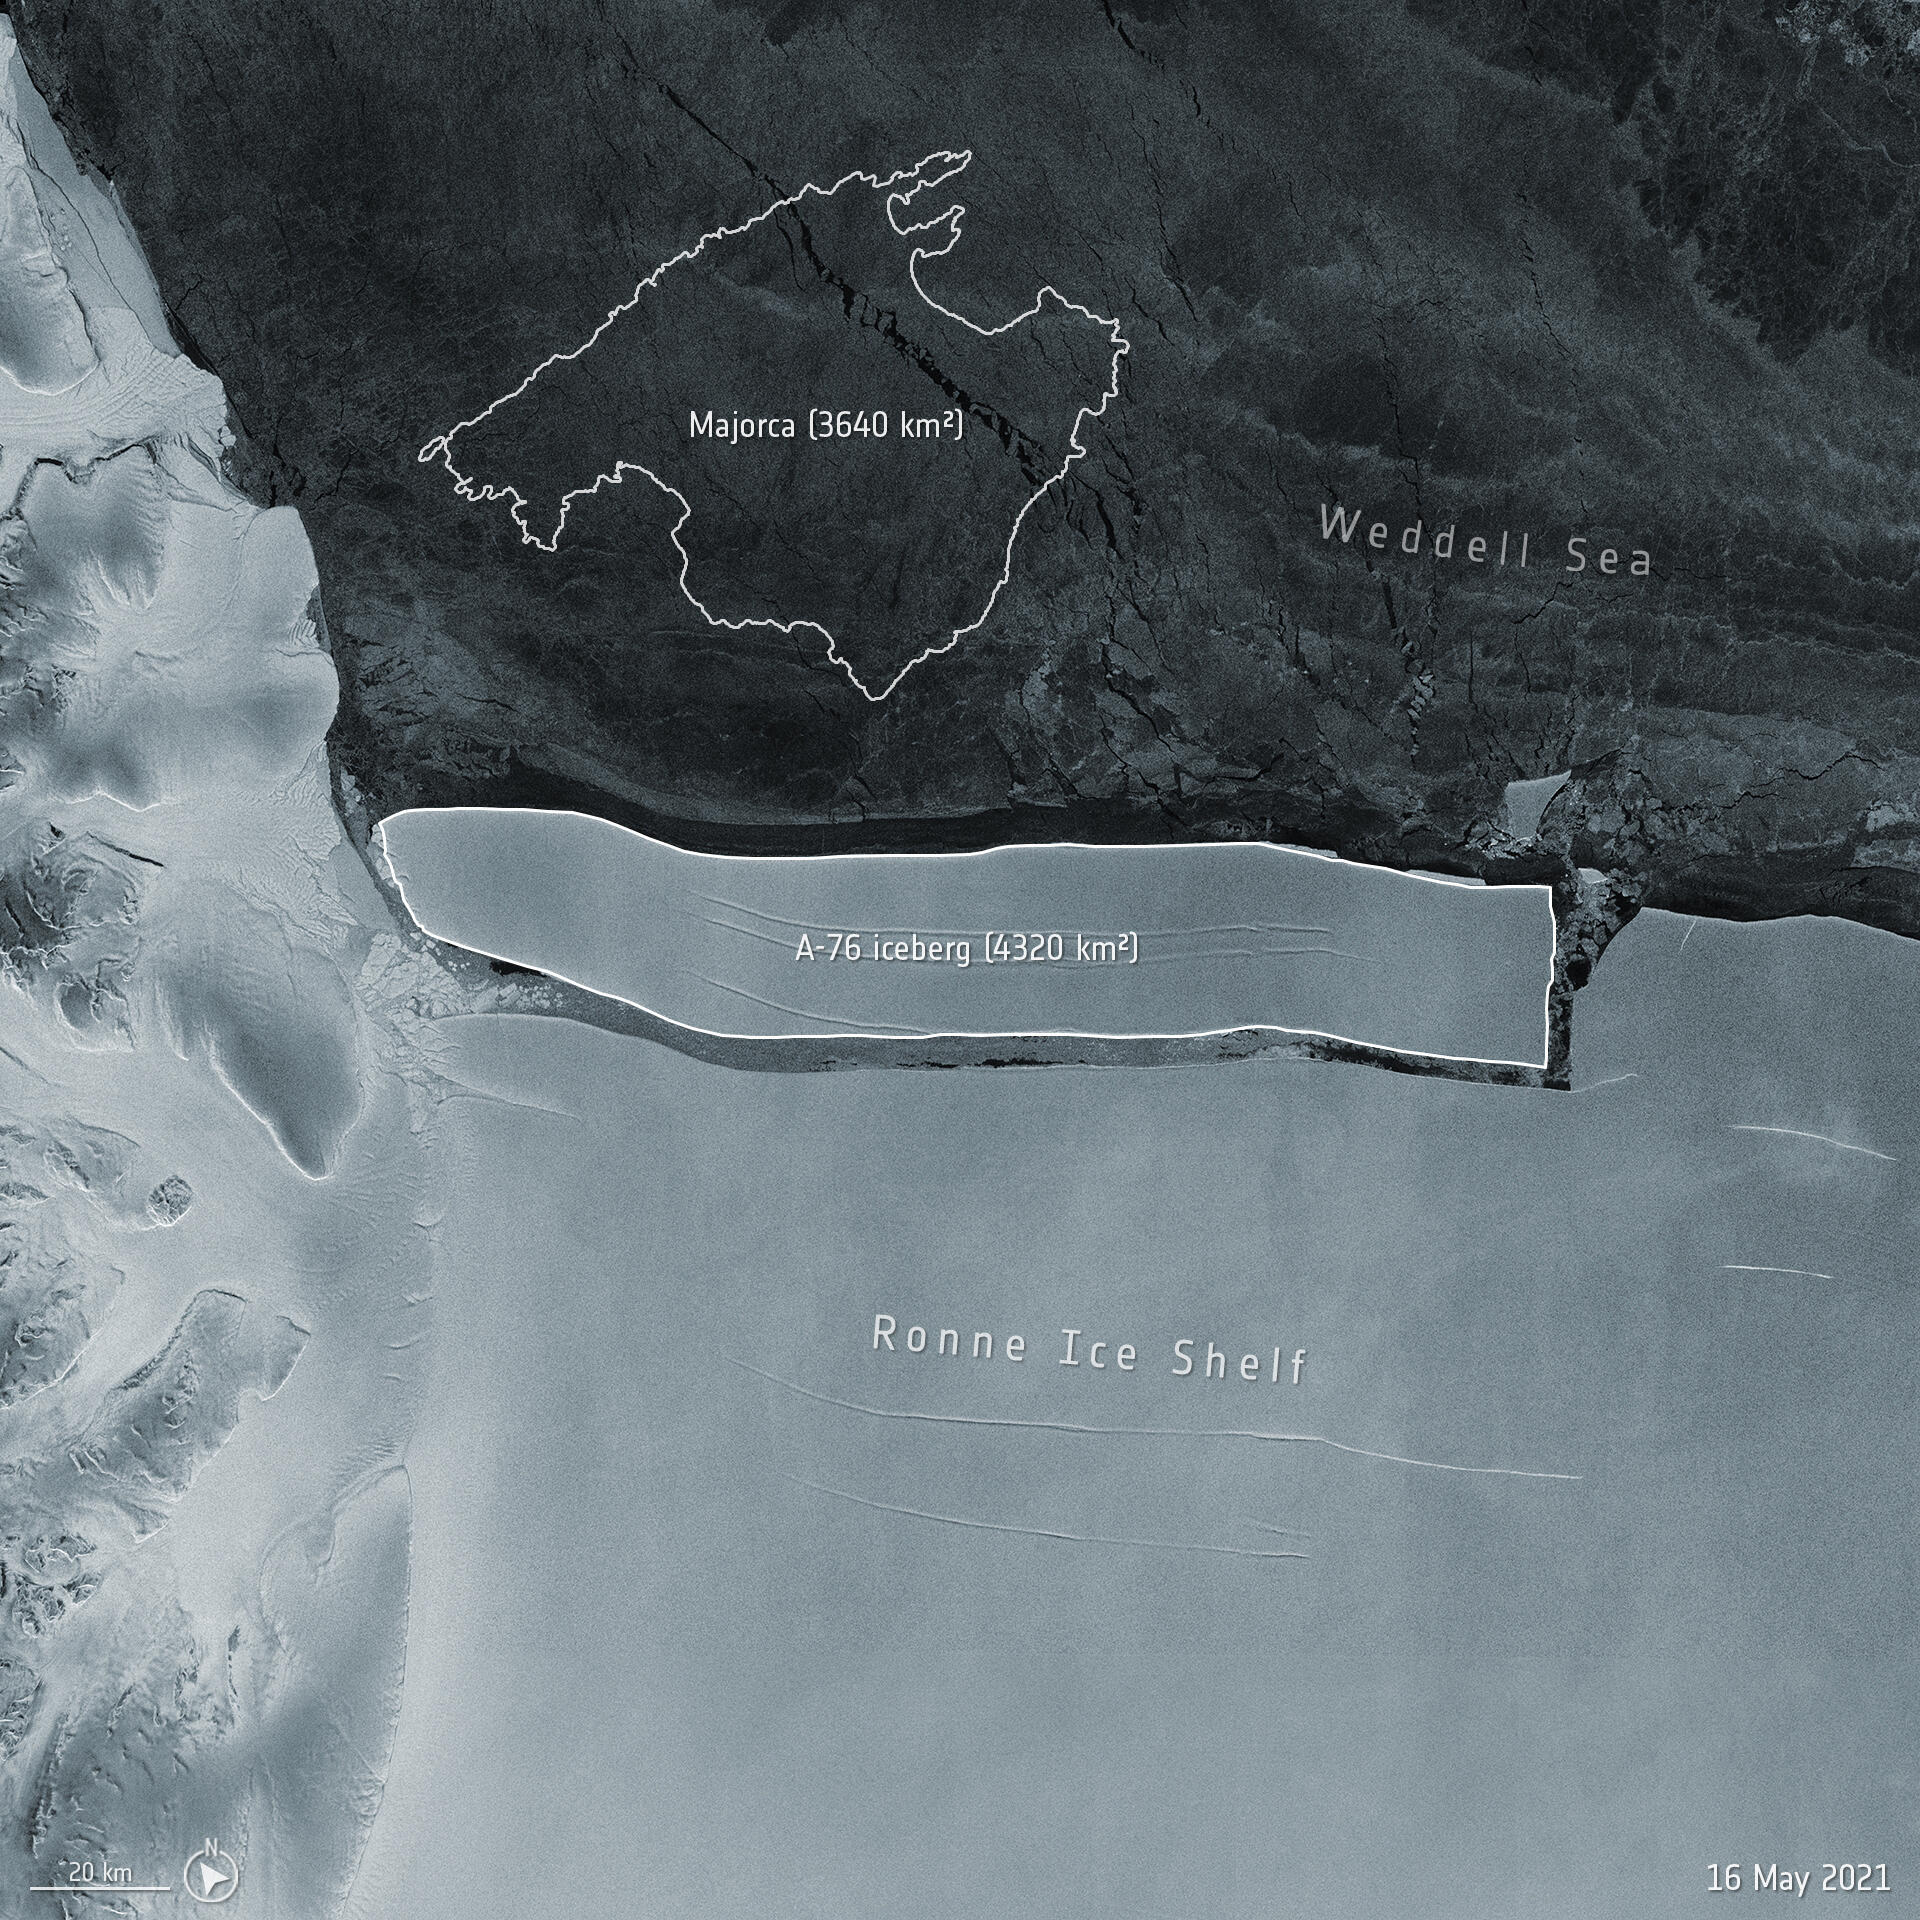 The iceberg, dubbed A-76, measures around 4320 square kilometres in size – currently making it the largest berg in the world